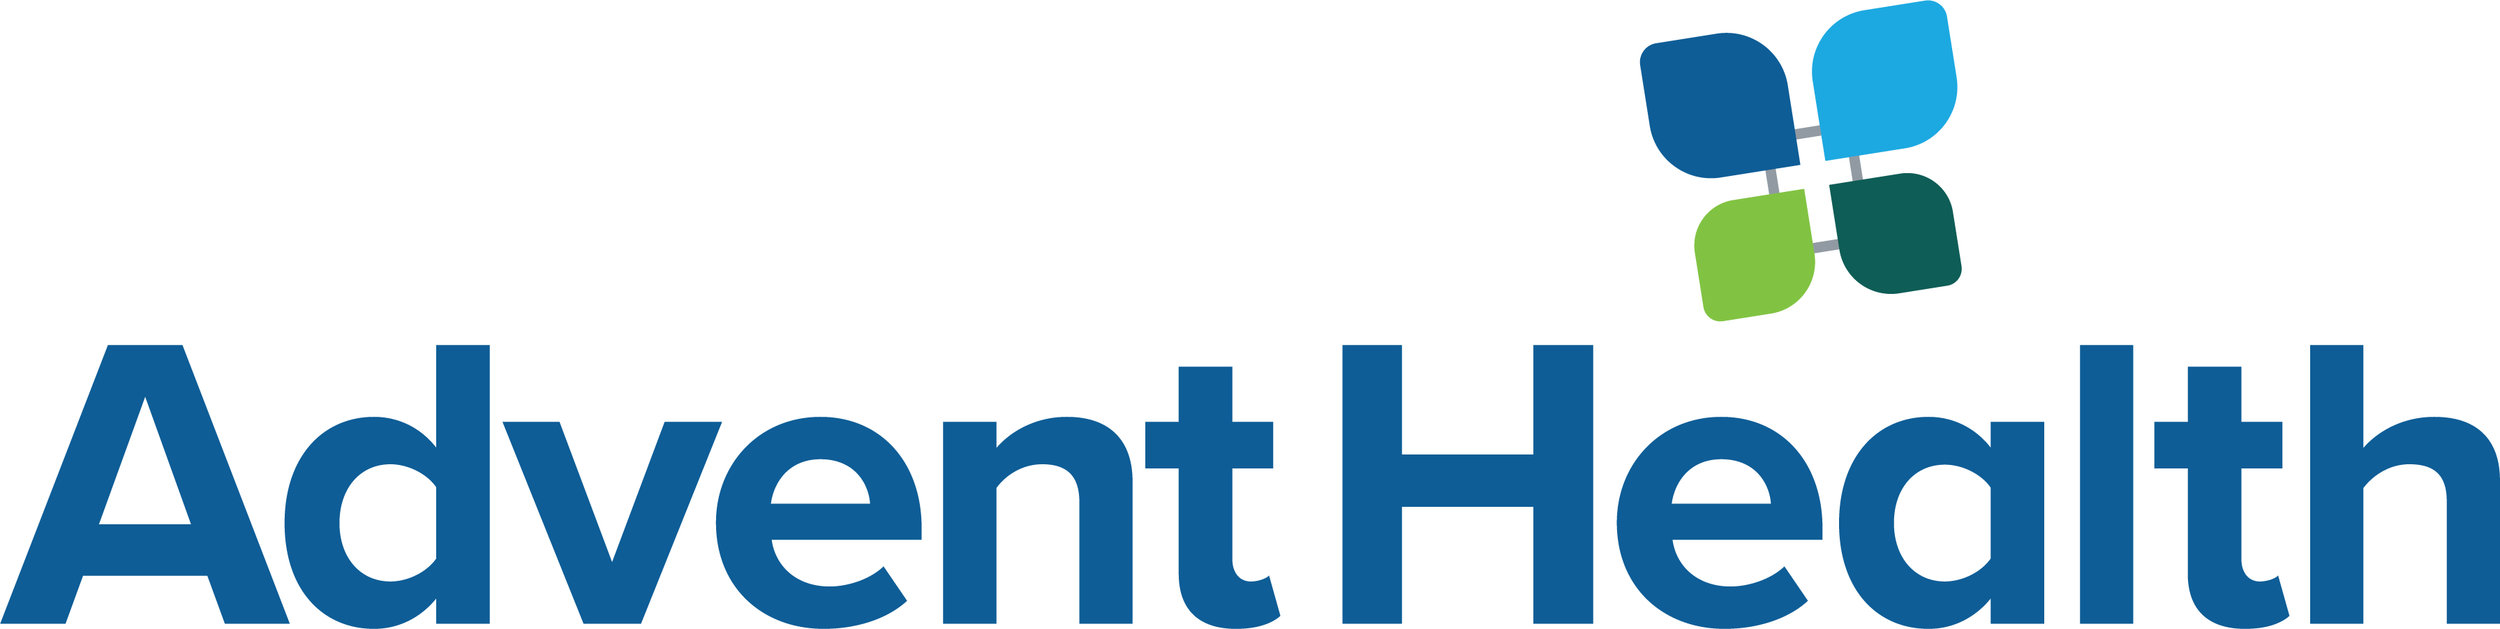 AdventHealth_global_4C.jpg